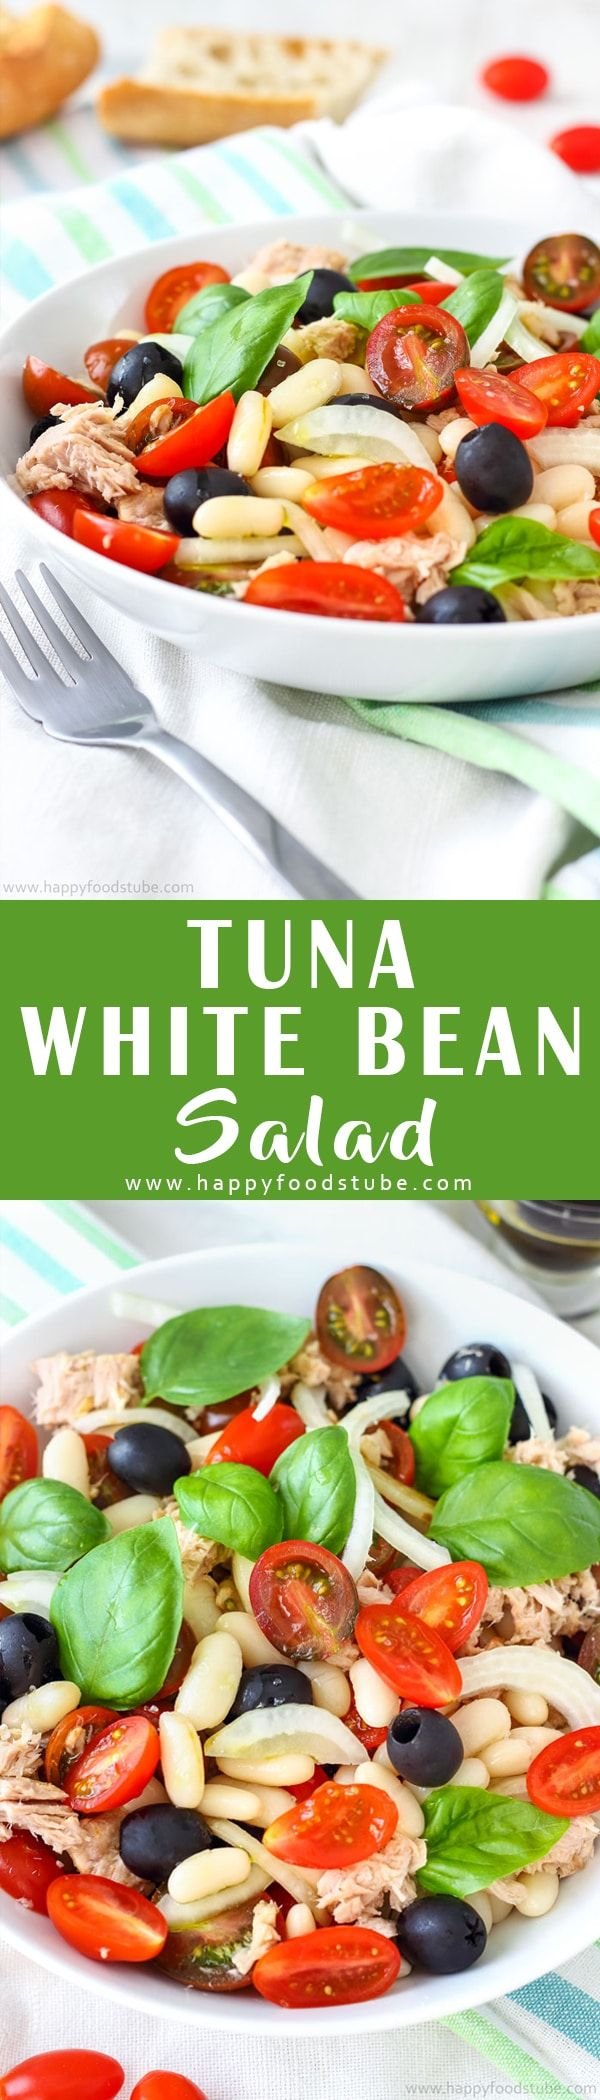 This tuna white bean salad is perfect for picnics or quick lunch. If you love Mediterranean food, you will enjoy this super easy recipe. Healthy Mediterranean diet recipe via @happyfoodstube